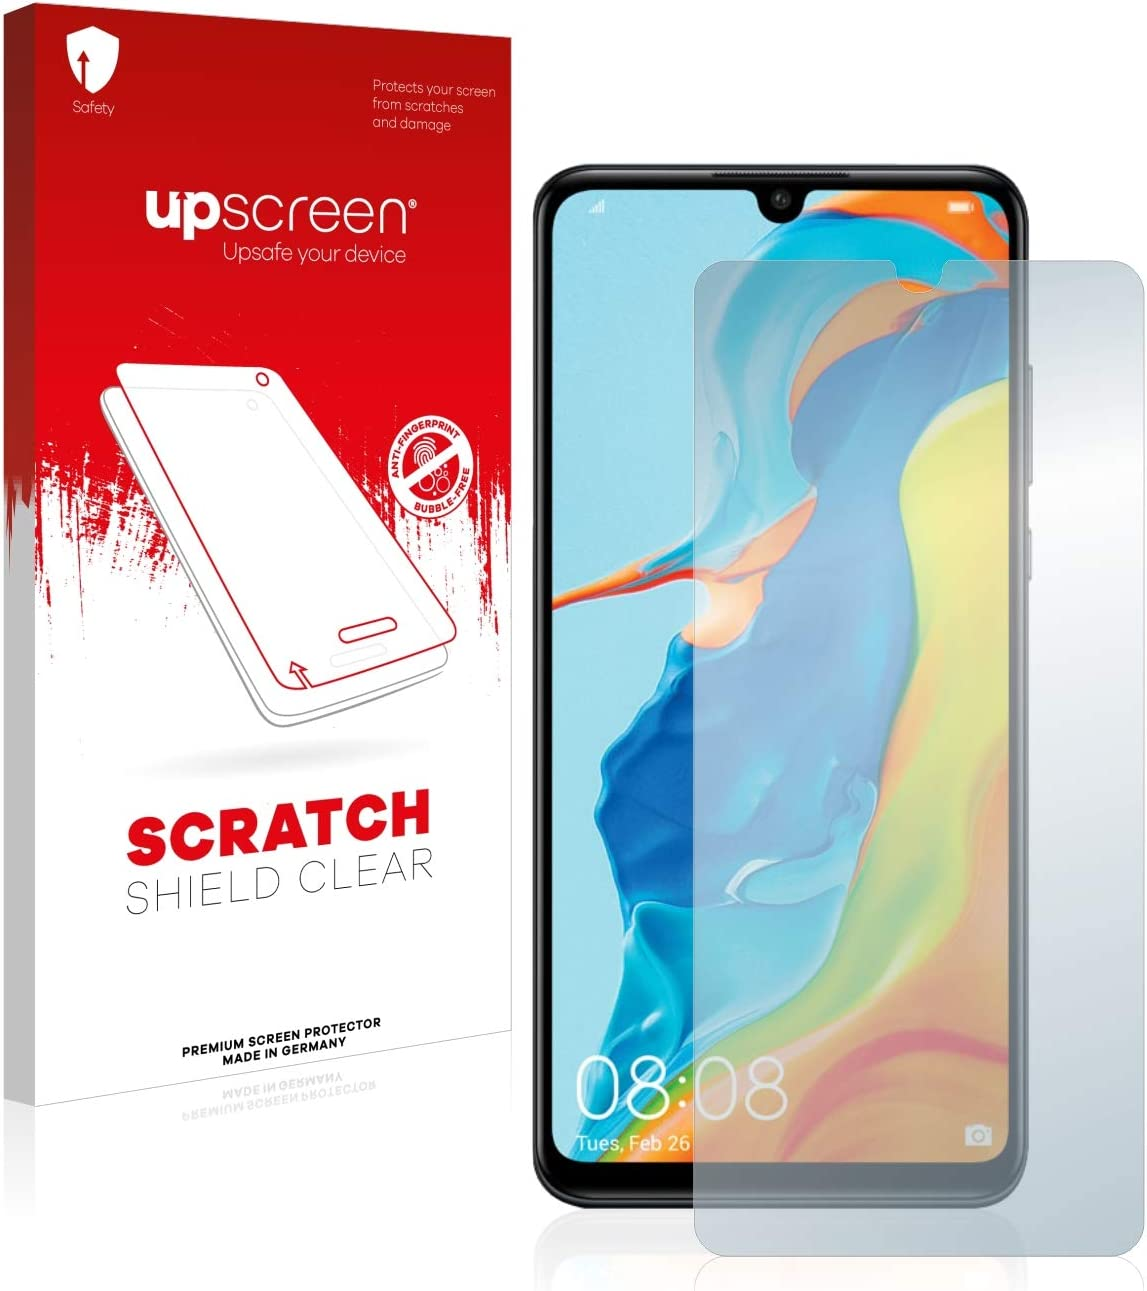 upscreen High Transparency Scratch Shield Clear Screen Protector for Huawei P30 lite Strong Scratch Protection Multitouch Optimized